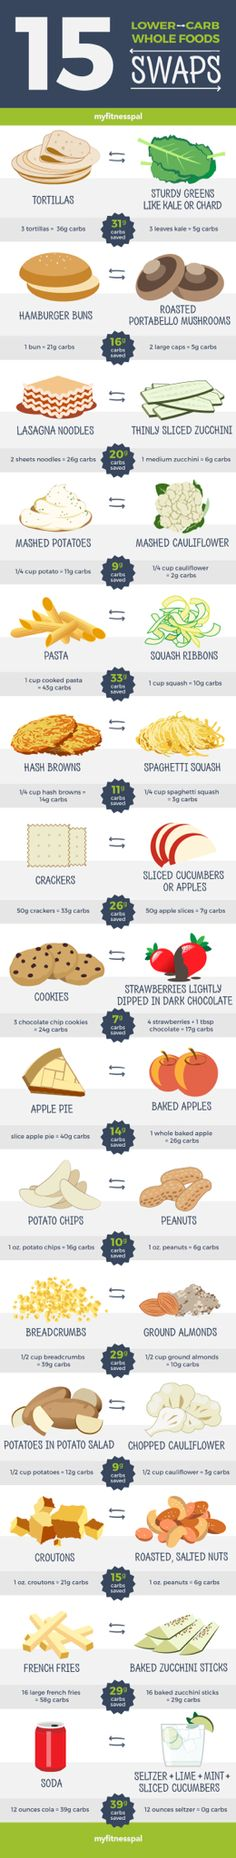 Lower-Carb Whole Food Swaps Trying to eat low carb? Try these easy lower carb swaps!Trying to eat low carb? Try these easy lower carb swaps! Low Carb Recipes, Whole Food Recipes, Diet Recipes, Diet Tips, Oats Recipes, Top Recipes, Fudge Recipes, Bean Recipes, Sausage Recipes